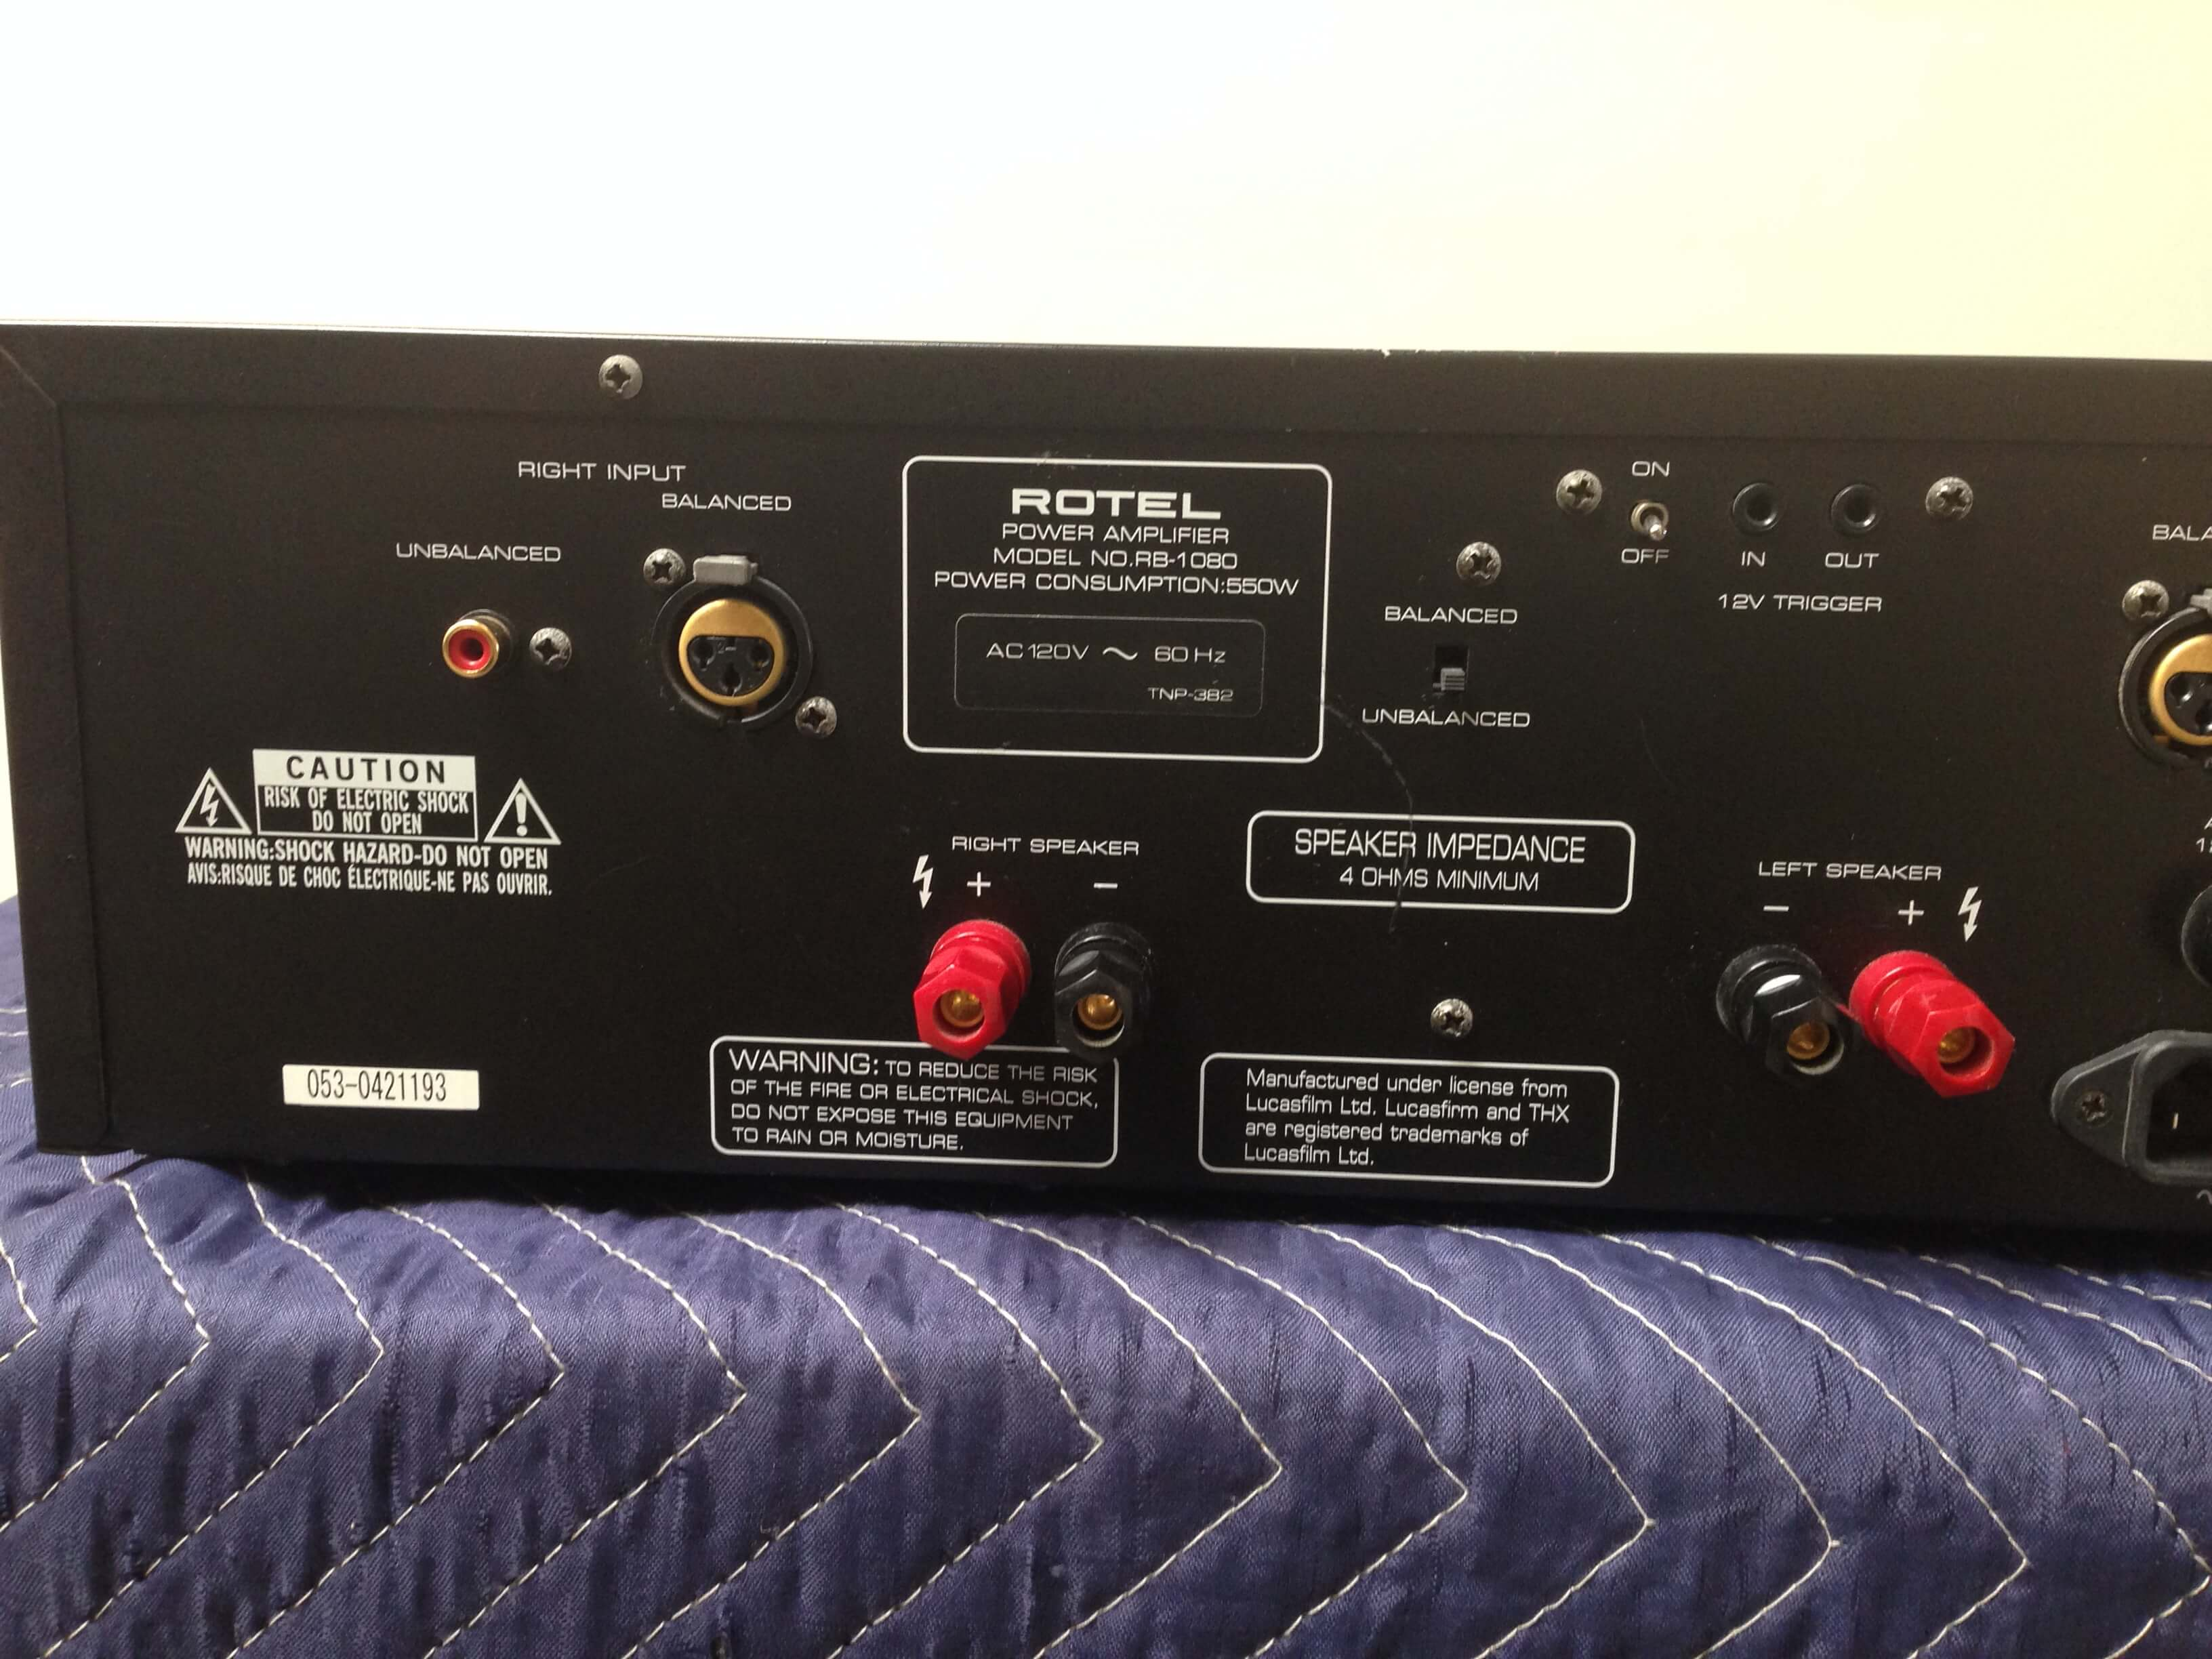 Rotel RB-1080 power amplifier